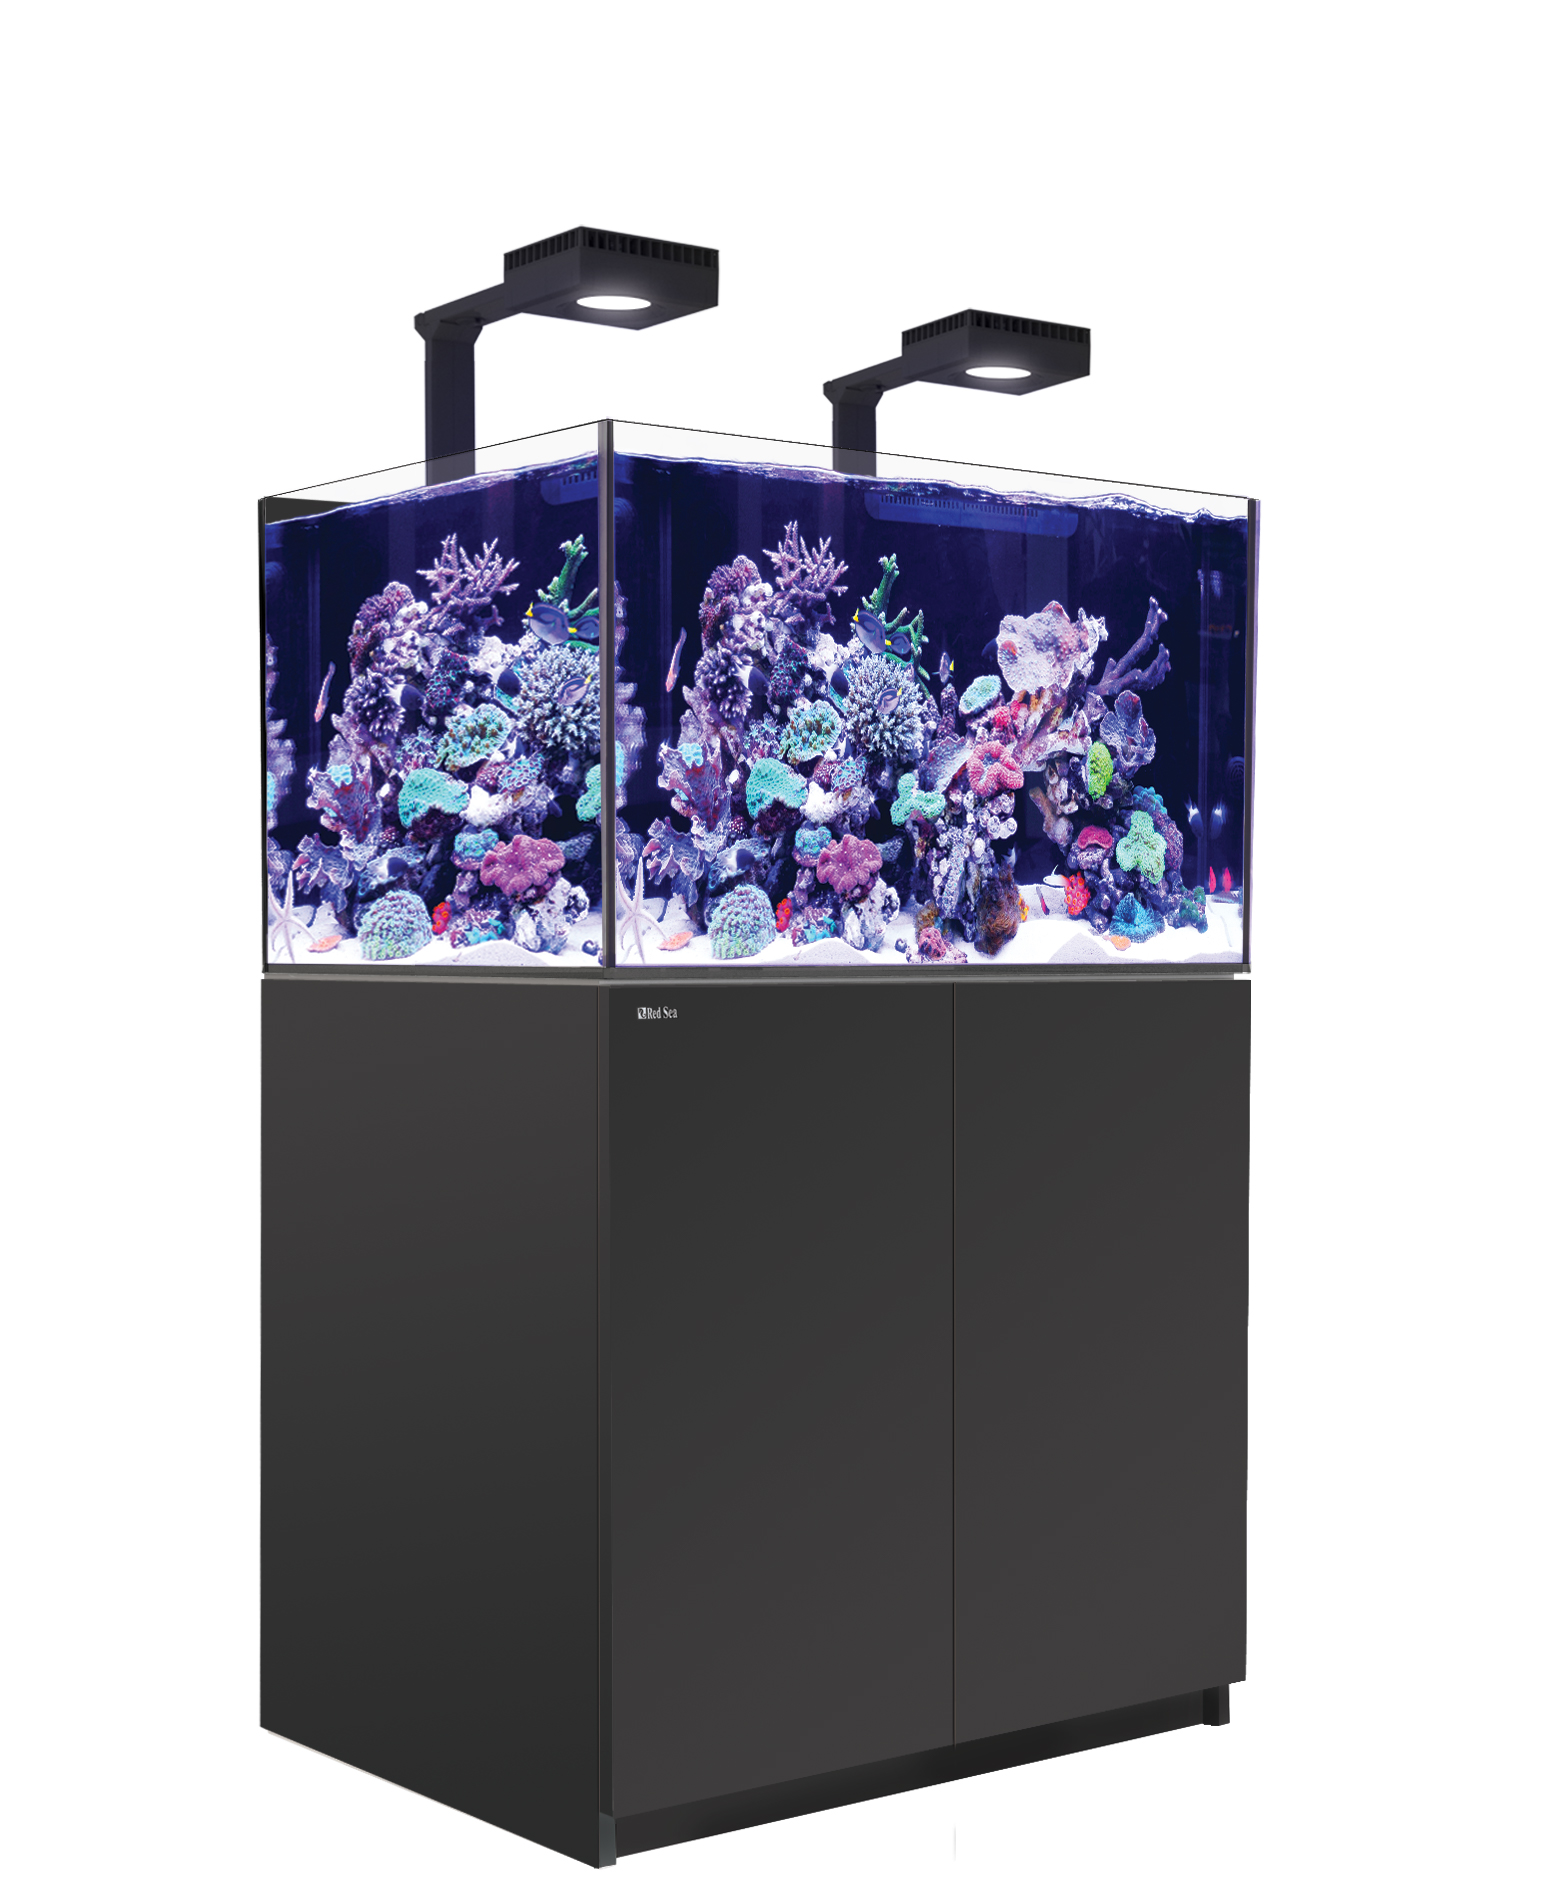 REEFER  XL 300 Deluxe System  - Black   (incl. 2 X ReefLED  90 & Mounting Arms)